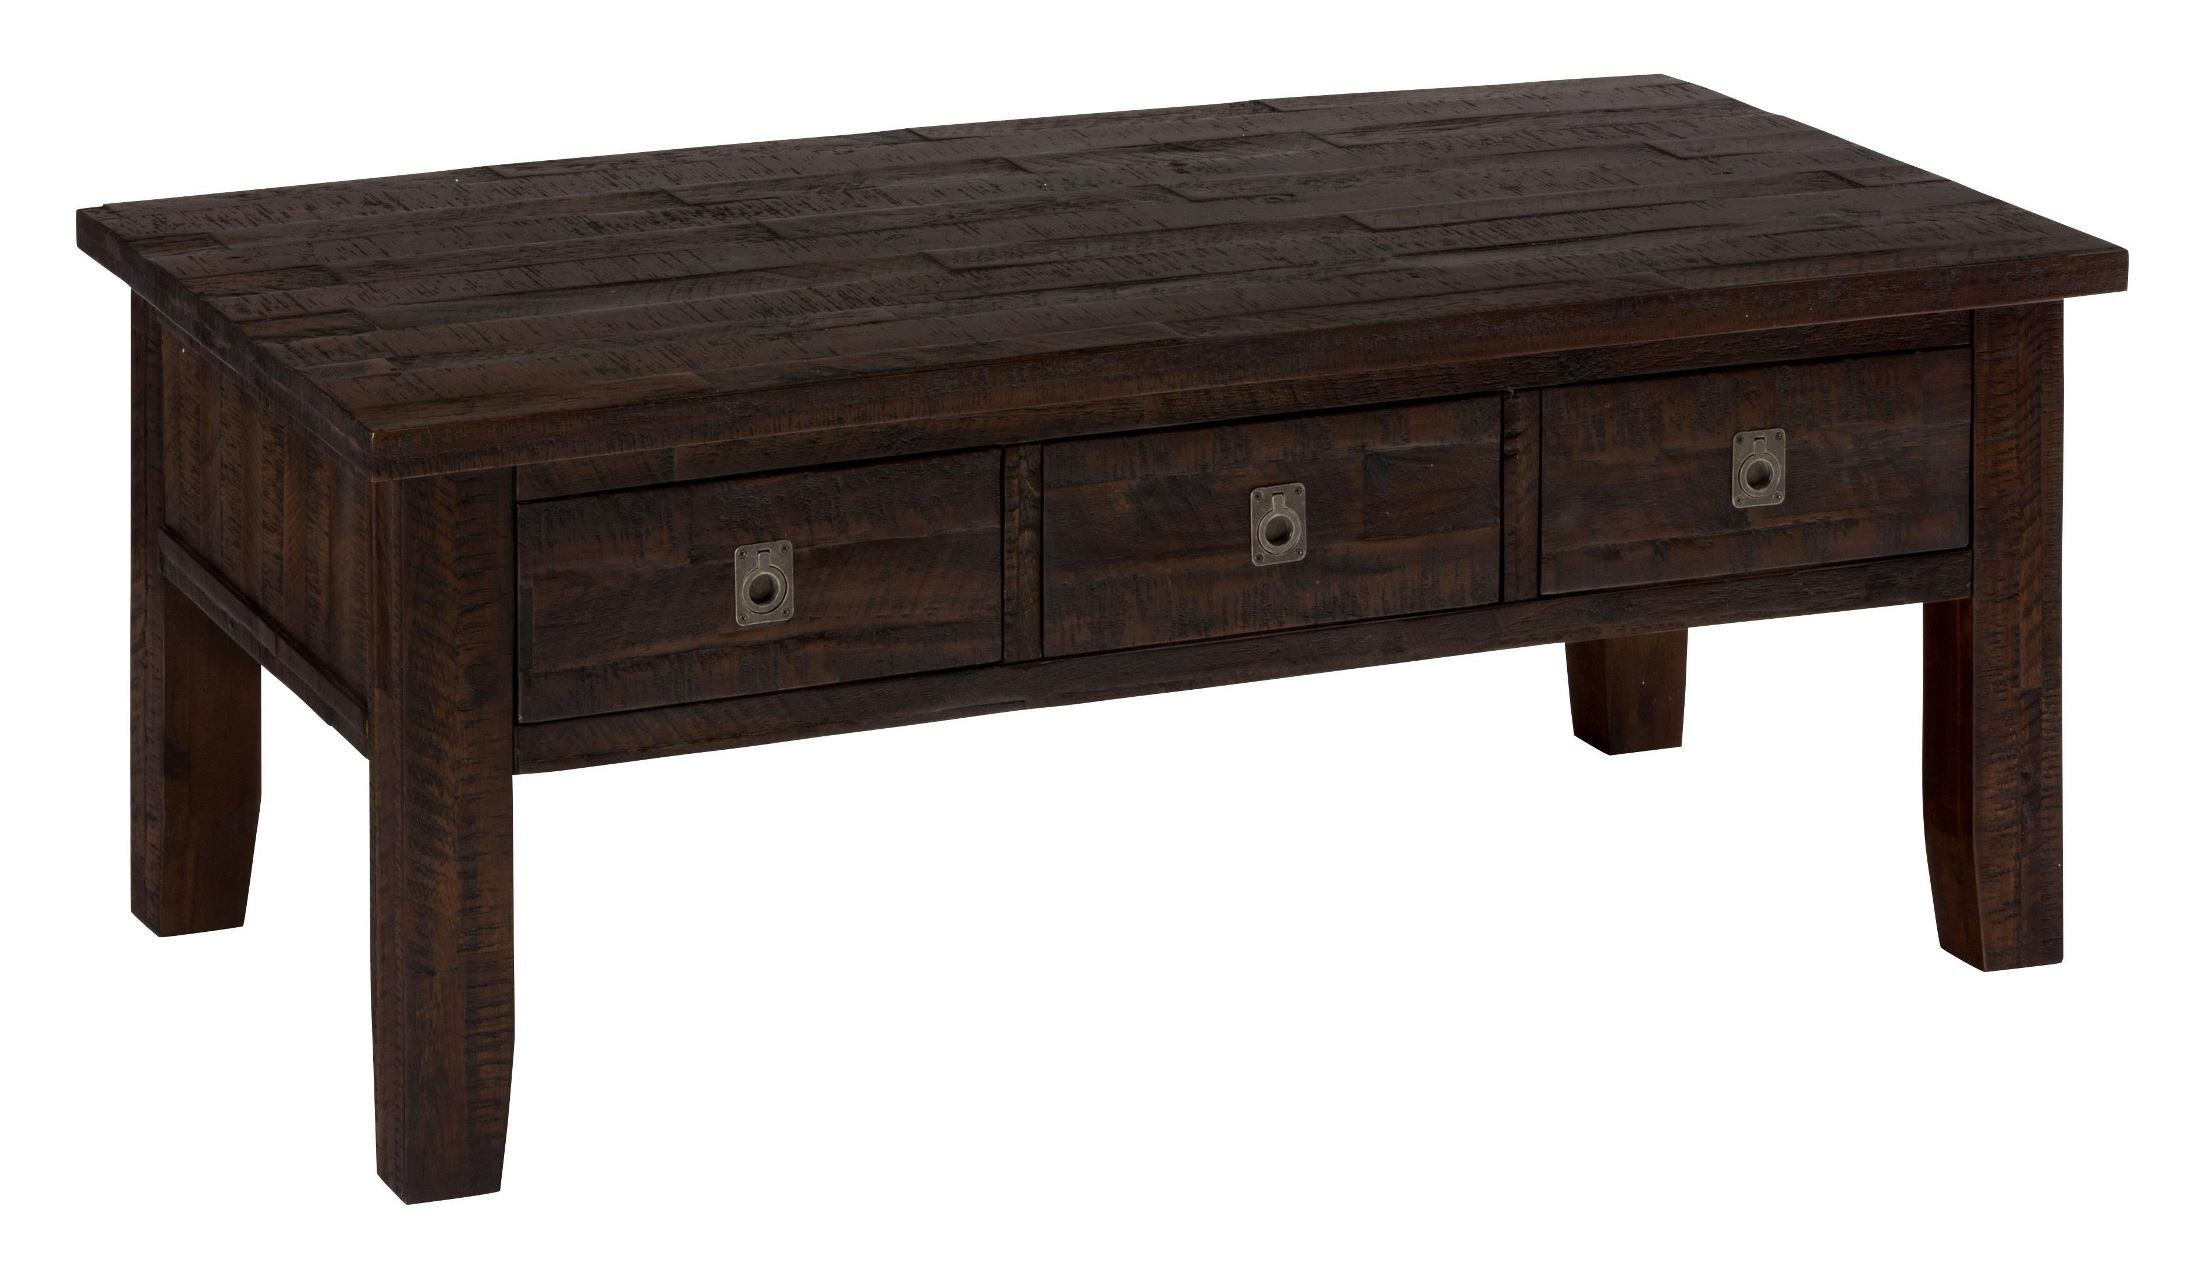 Kona Grove Rustic Chocolate Rectangular Cocktail Table